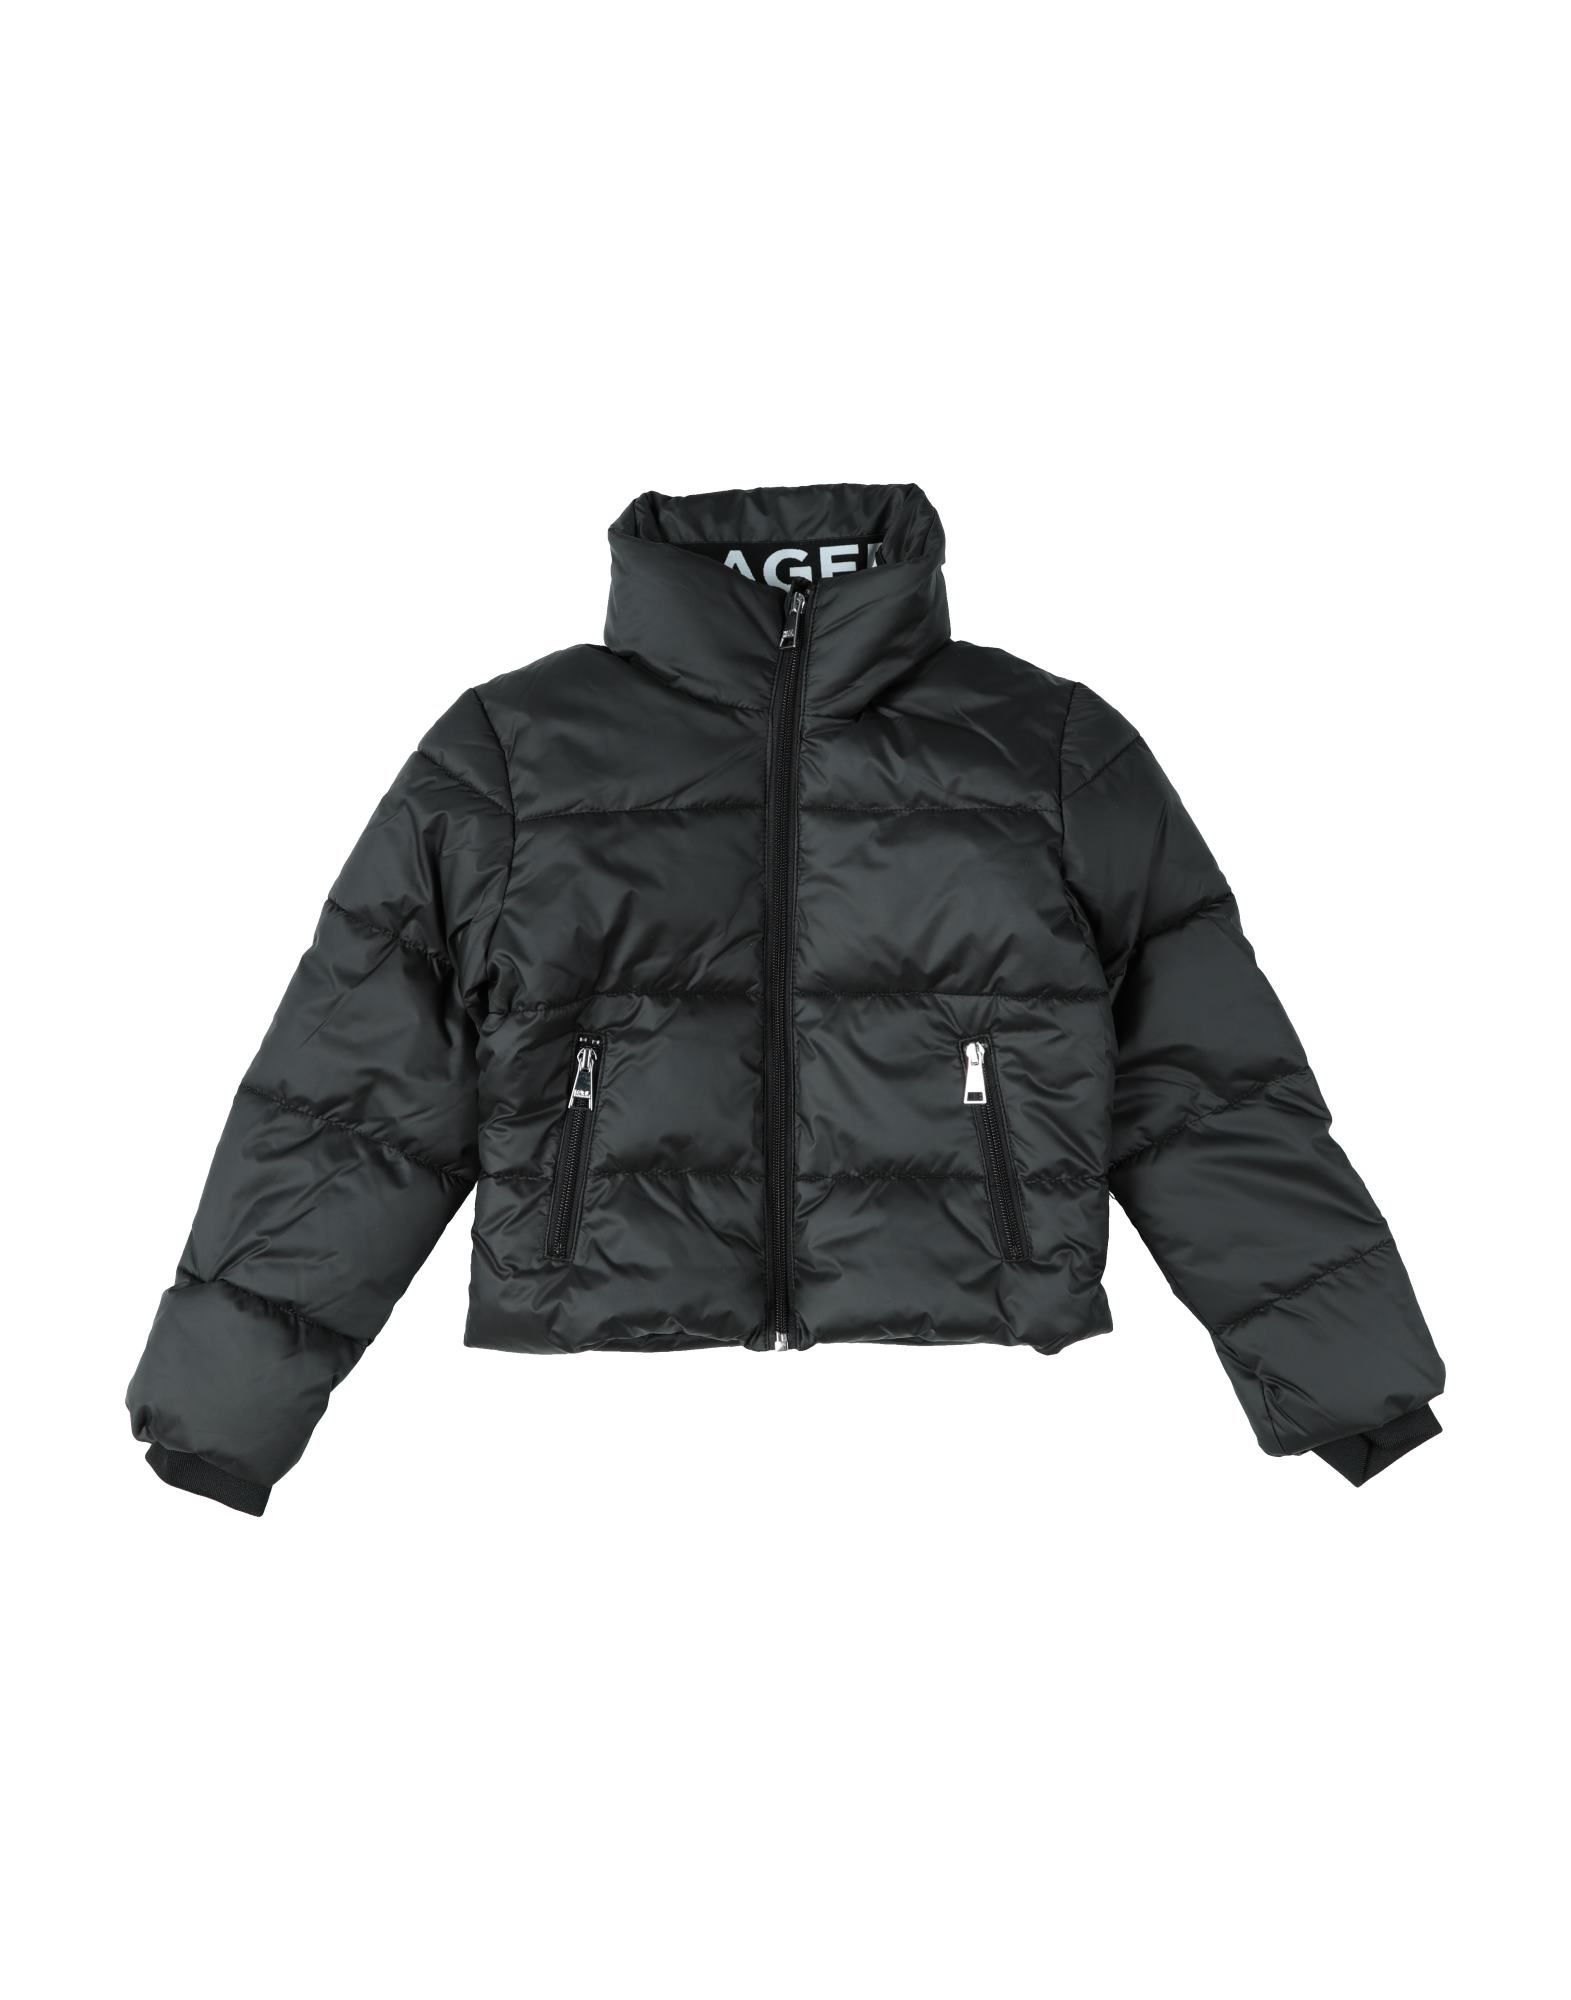 KARL LAGERFELD Synthetic Down Jackets - Item 41923524